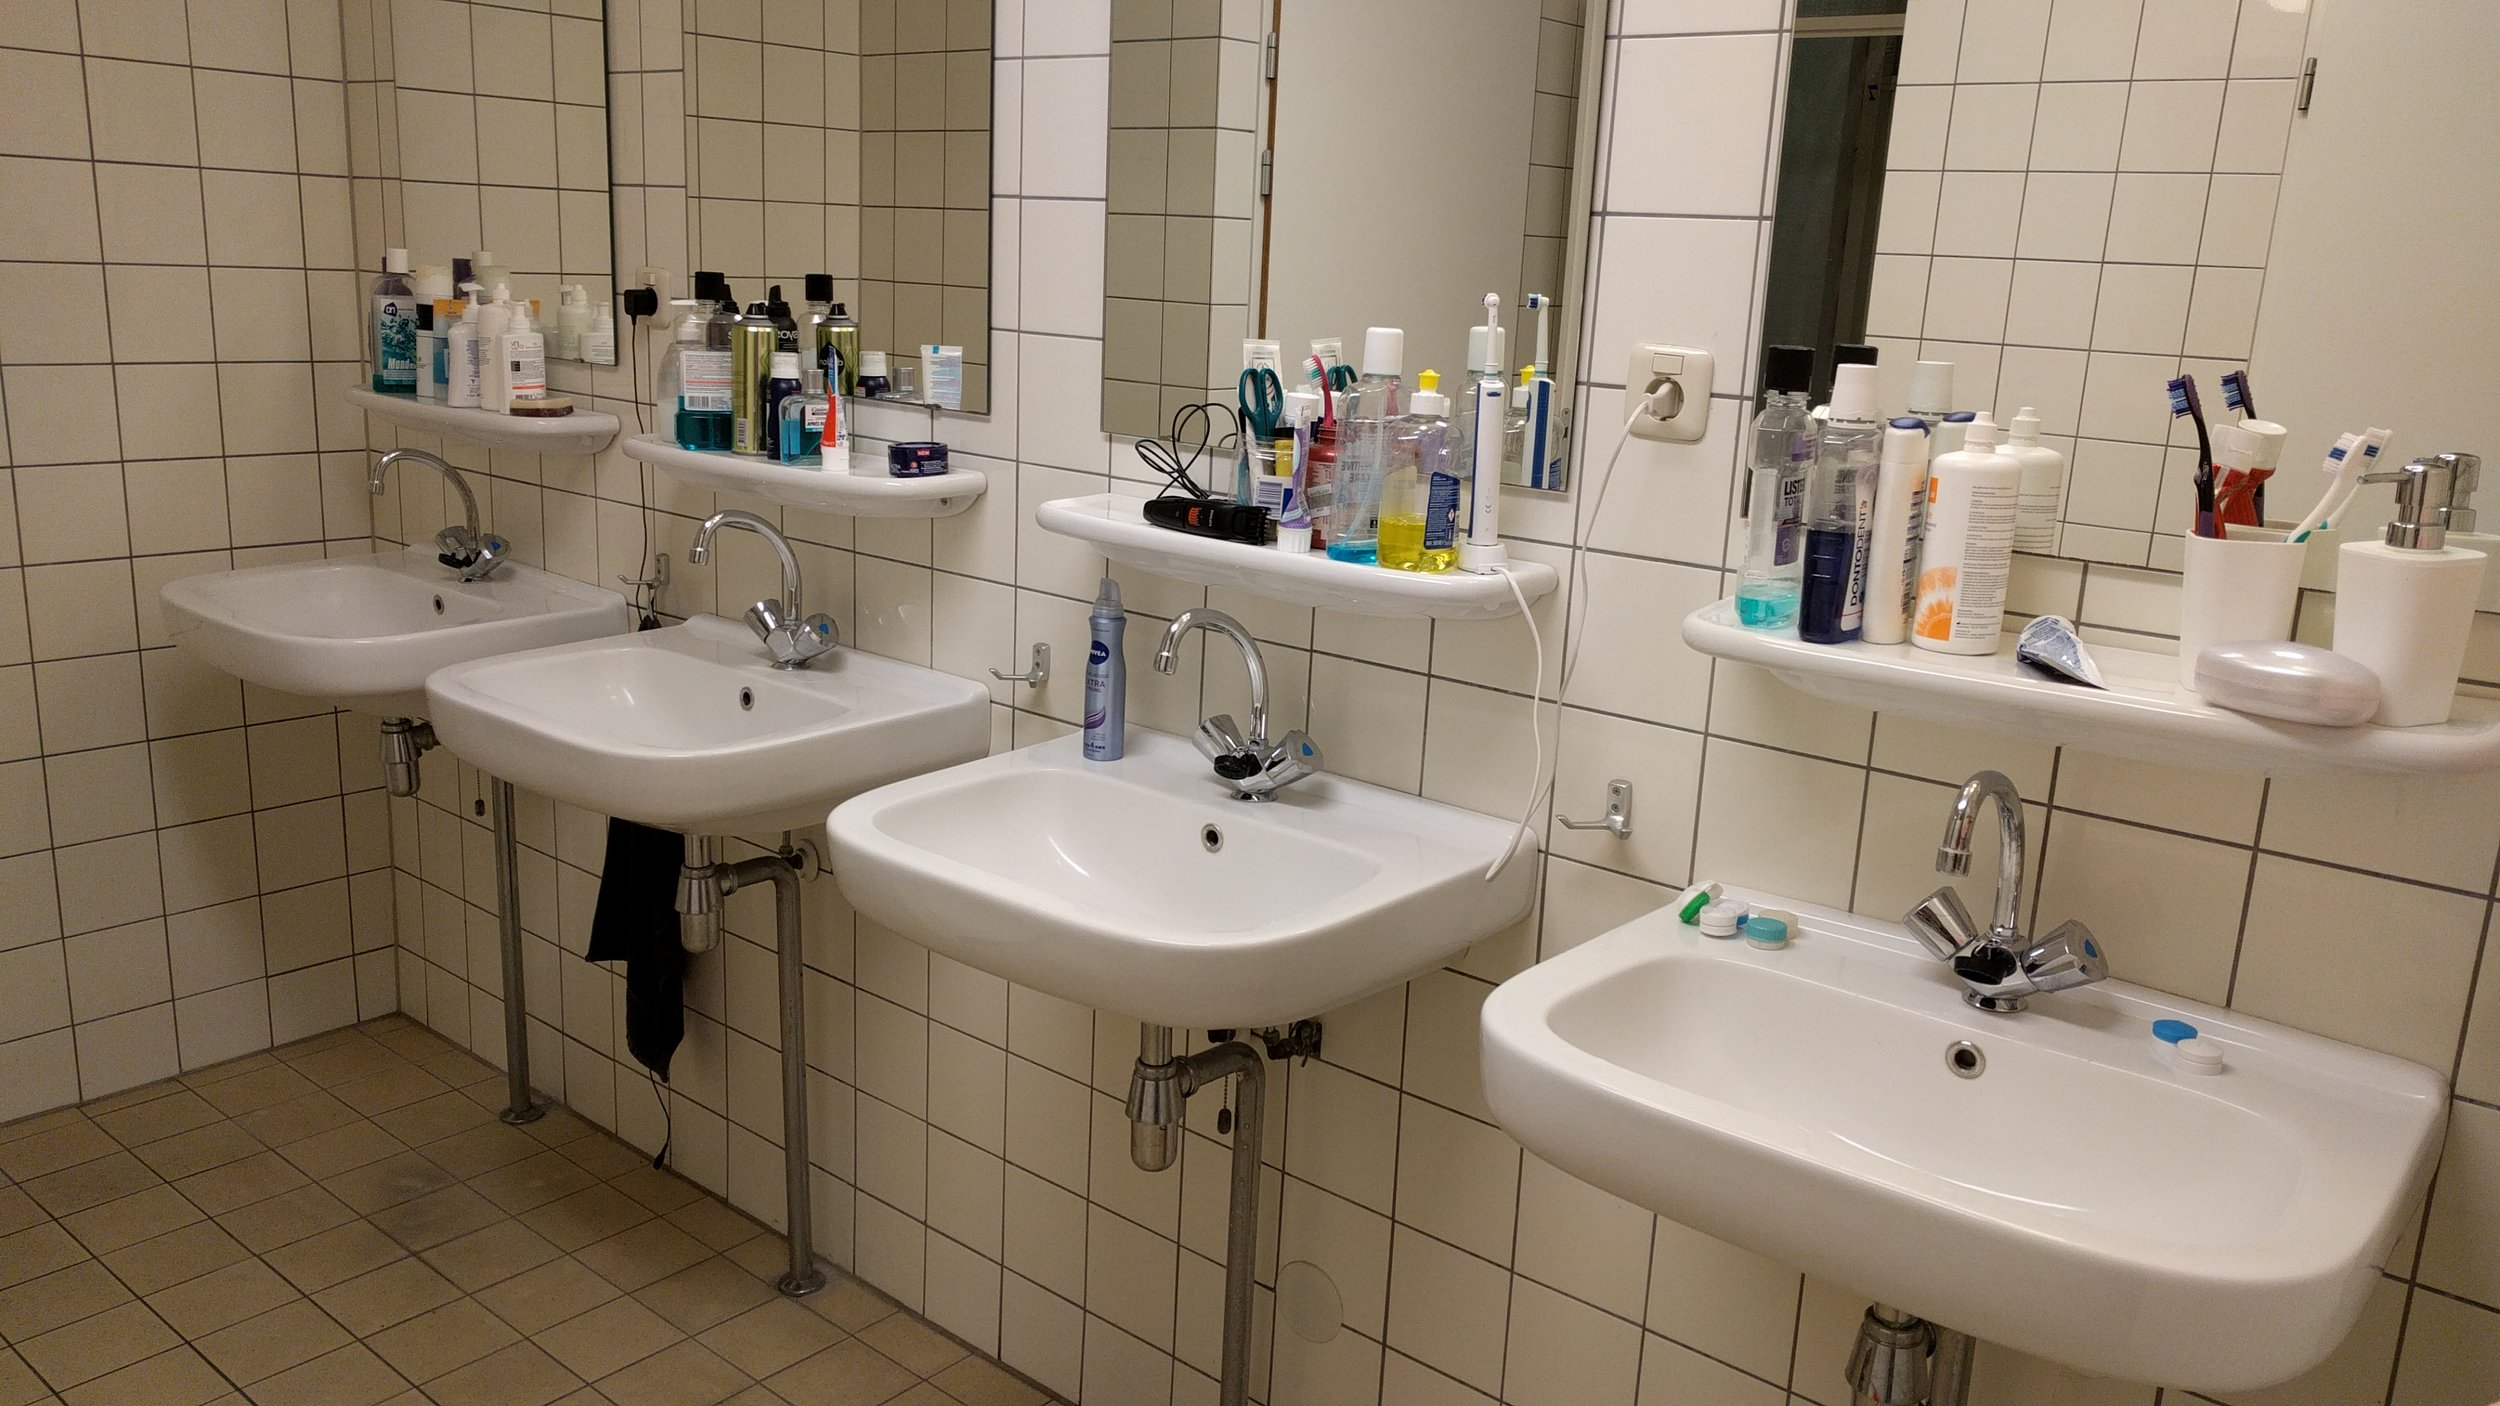 Make sure the bathroom is clean, if it's not that poses a problem with trying to keep your hands clean - Image Credit:  Universal-Sci   CC BY 4.0